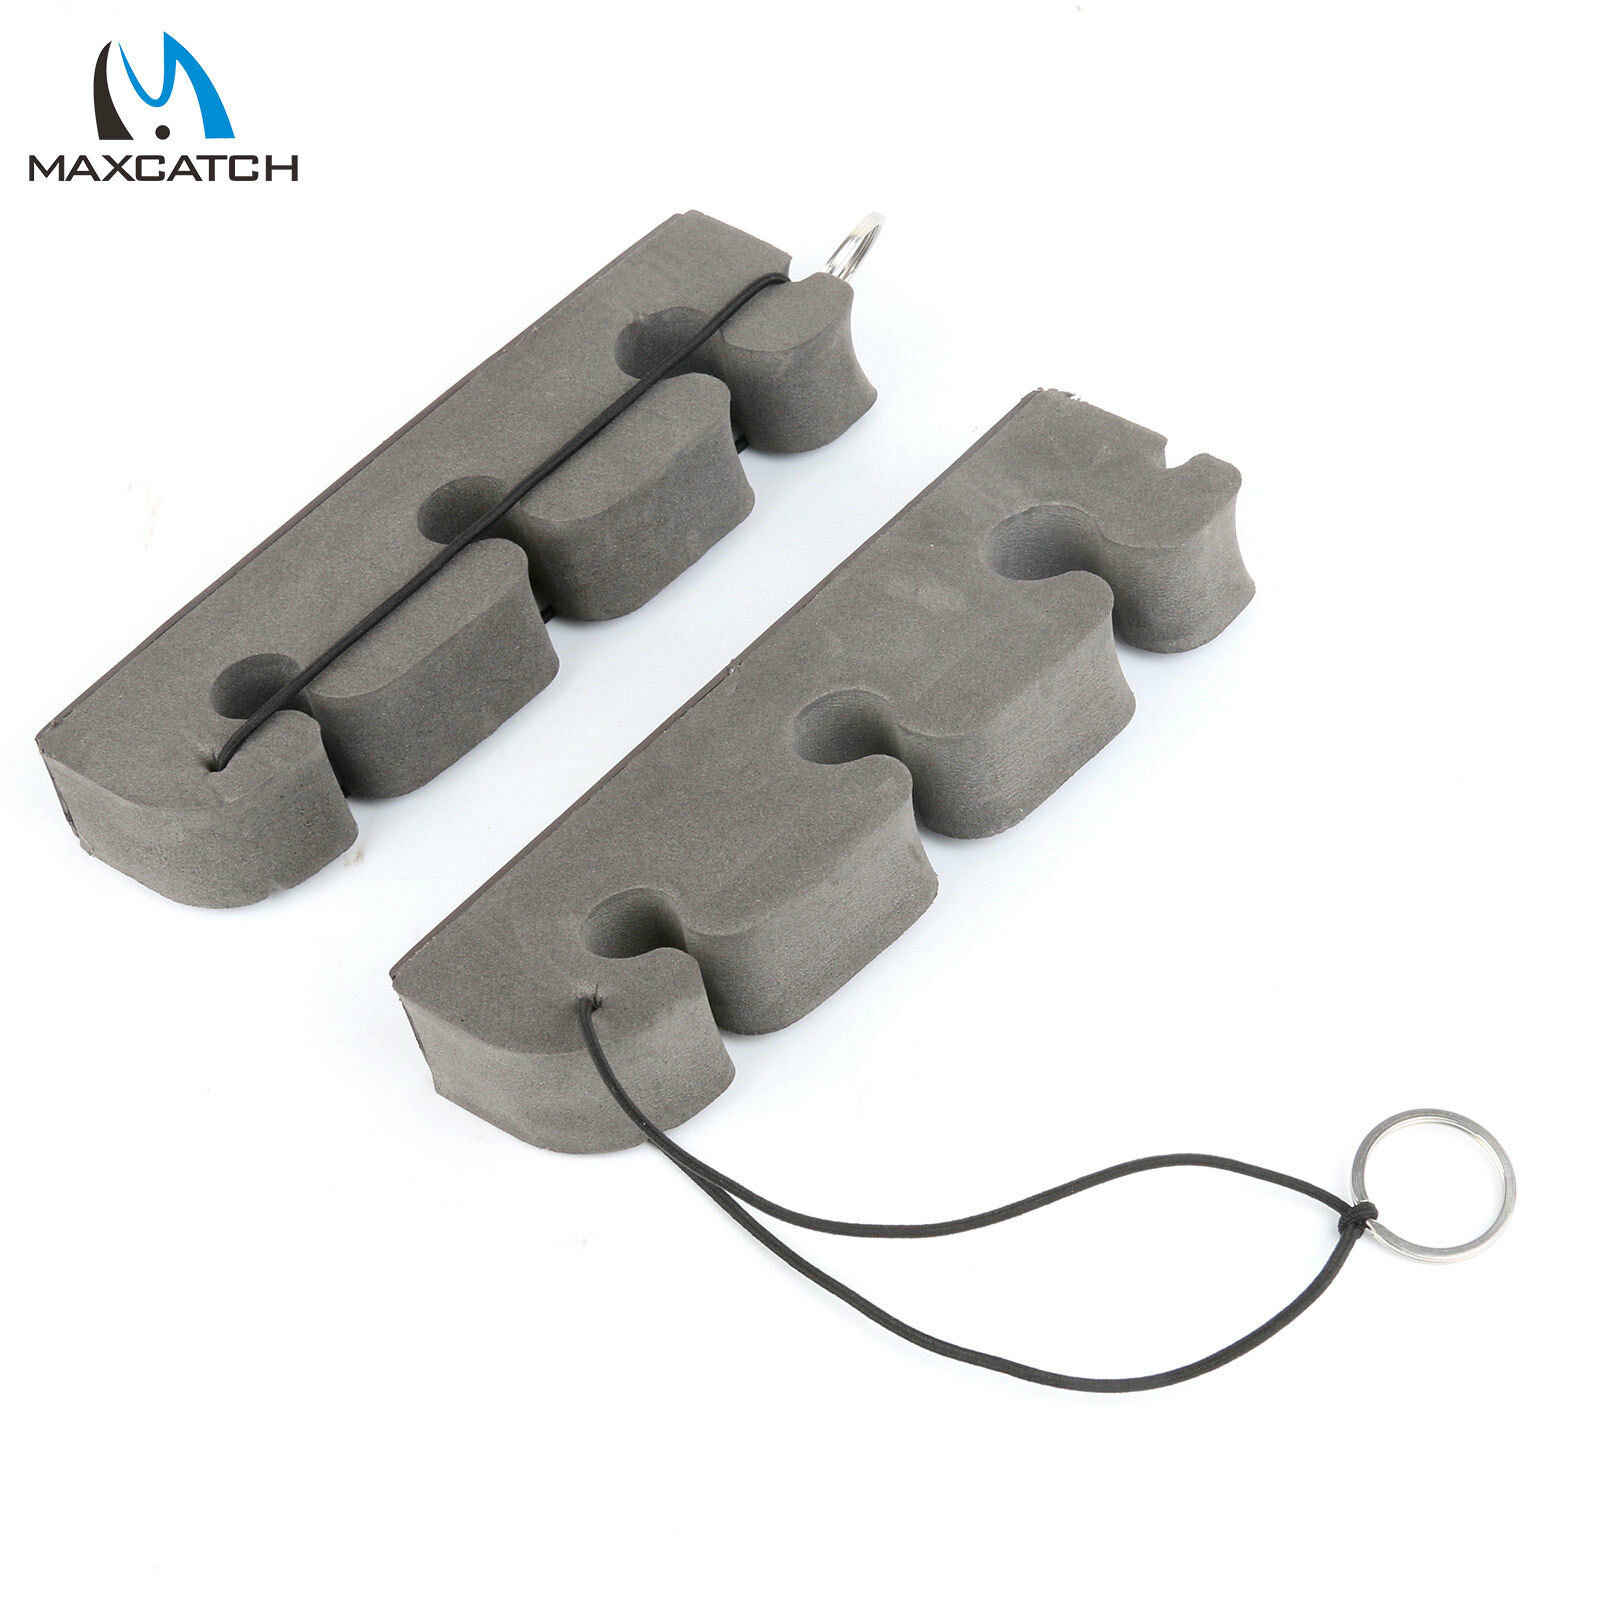 Details about Maxcatch 2 pcs Portable Fly Fishing Rod Rack Holder Rod Stand High Density Foam